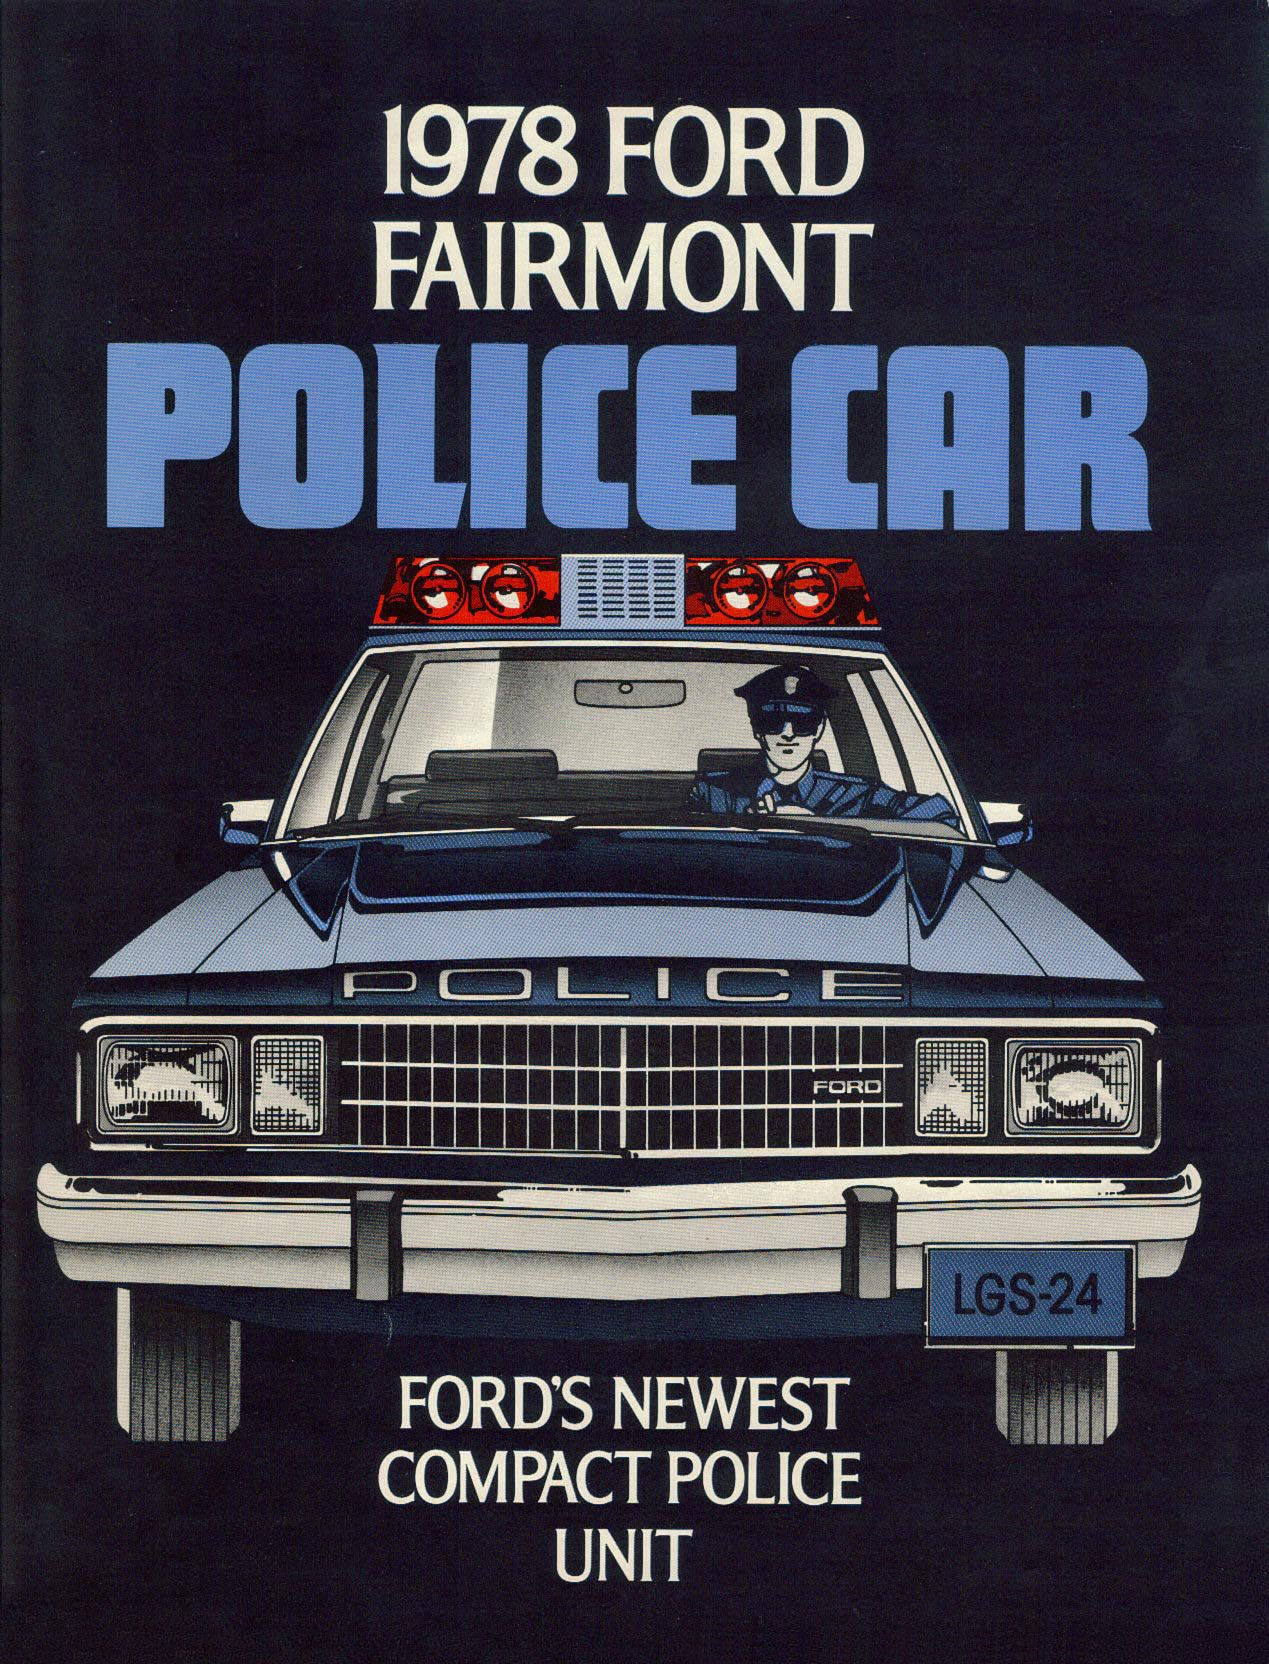 1978 Ford Fairmont Police Car Ford S Newest Compact Police Unit